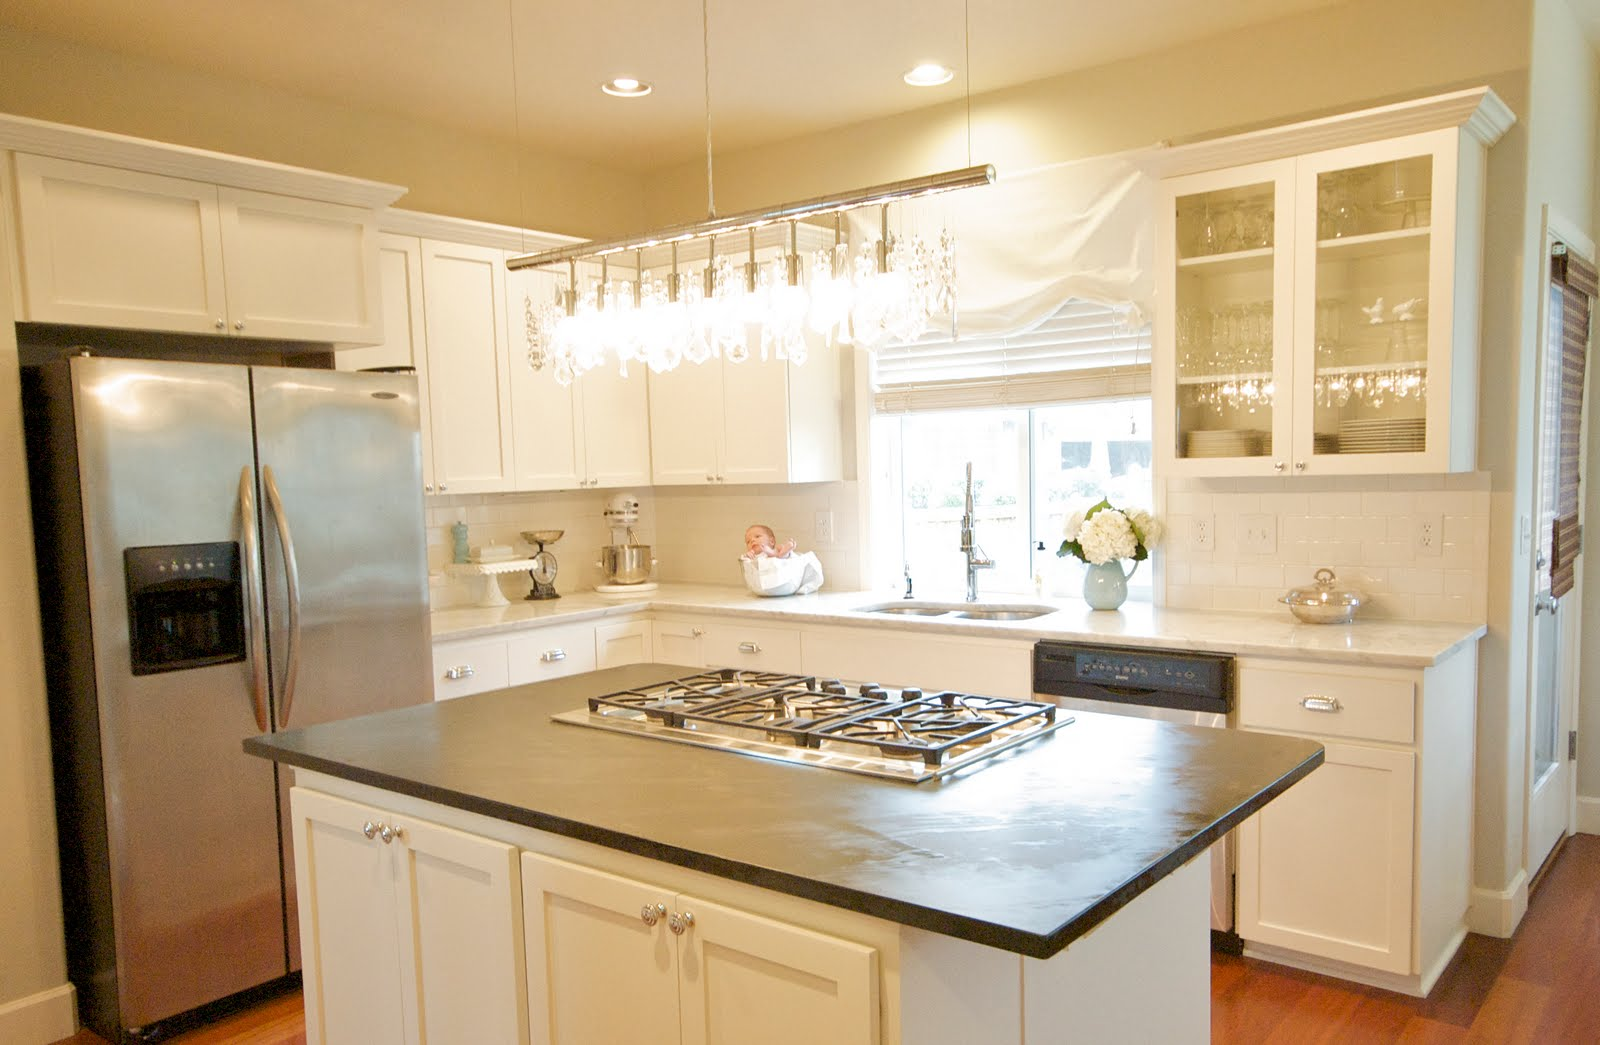 dreaming of white cabinets kitchen white cabinets Dreaming of White Cabinets